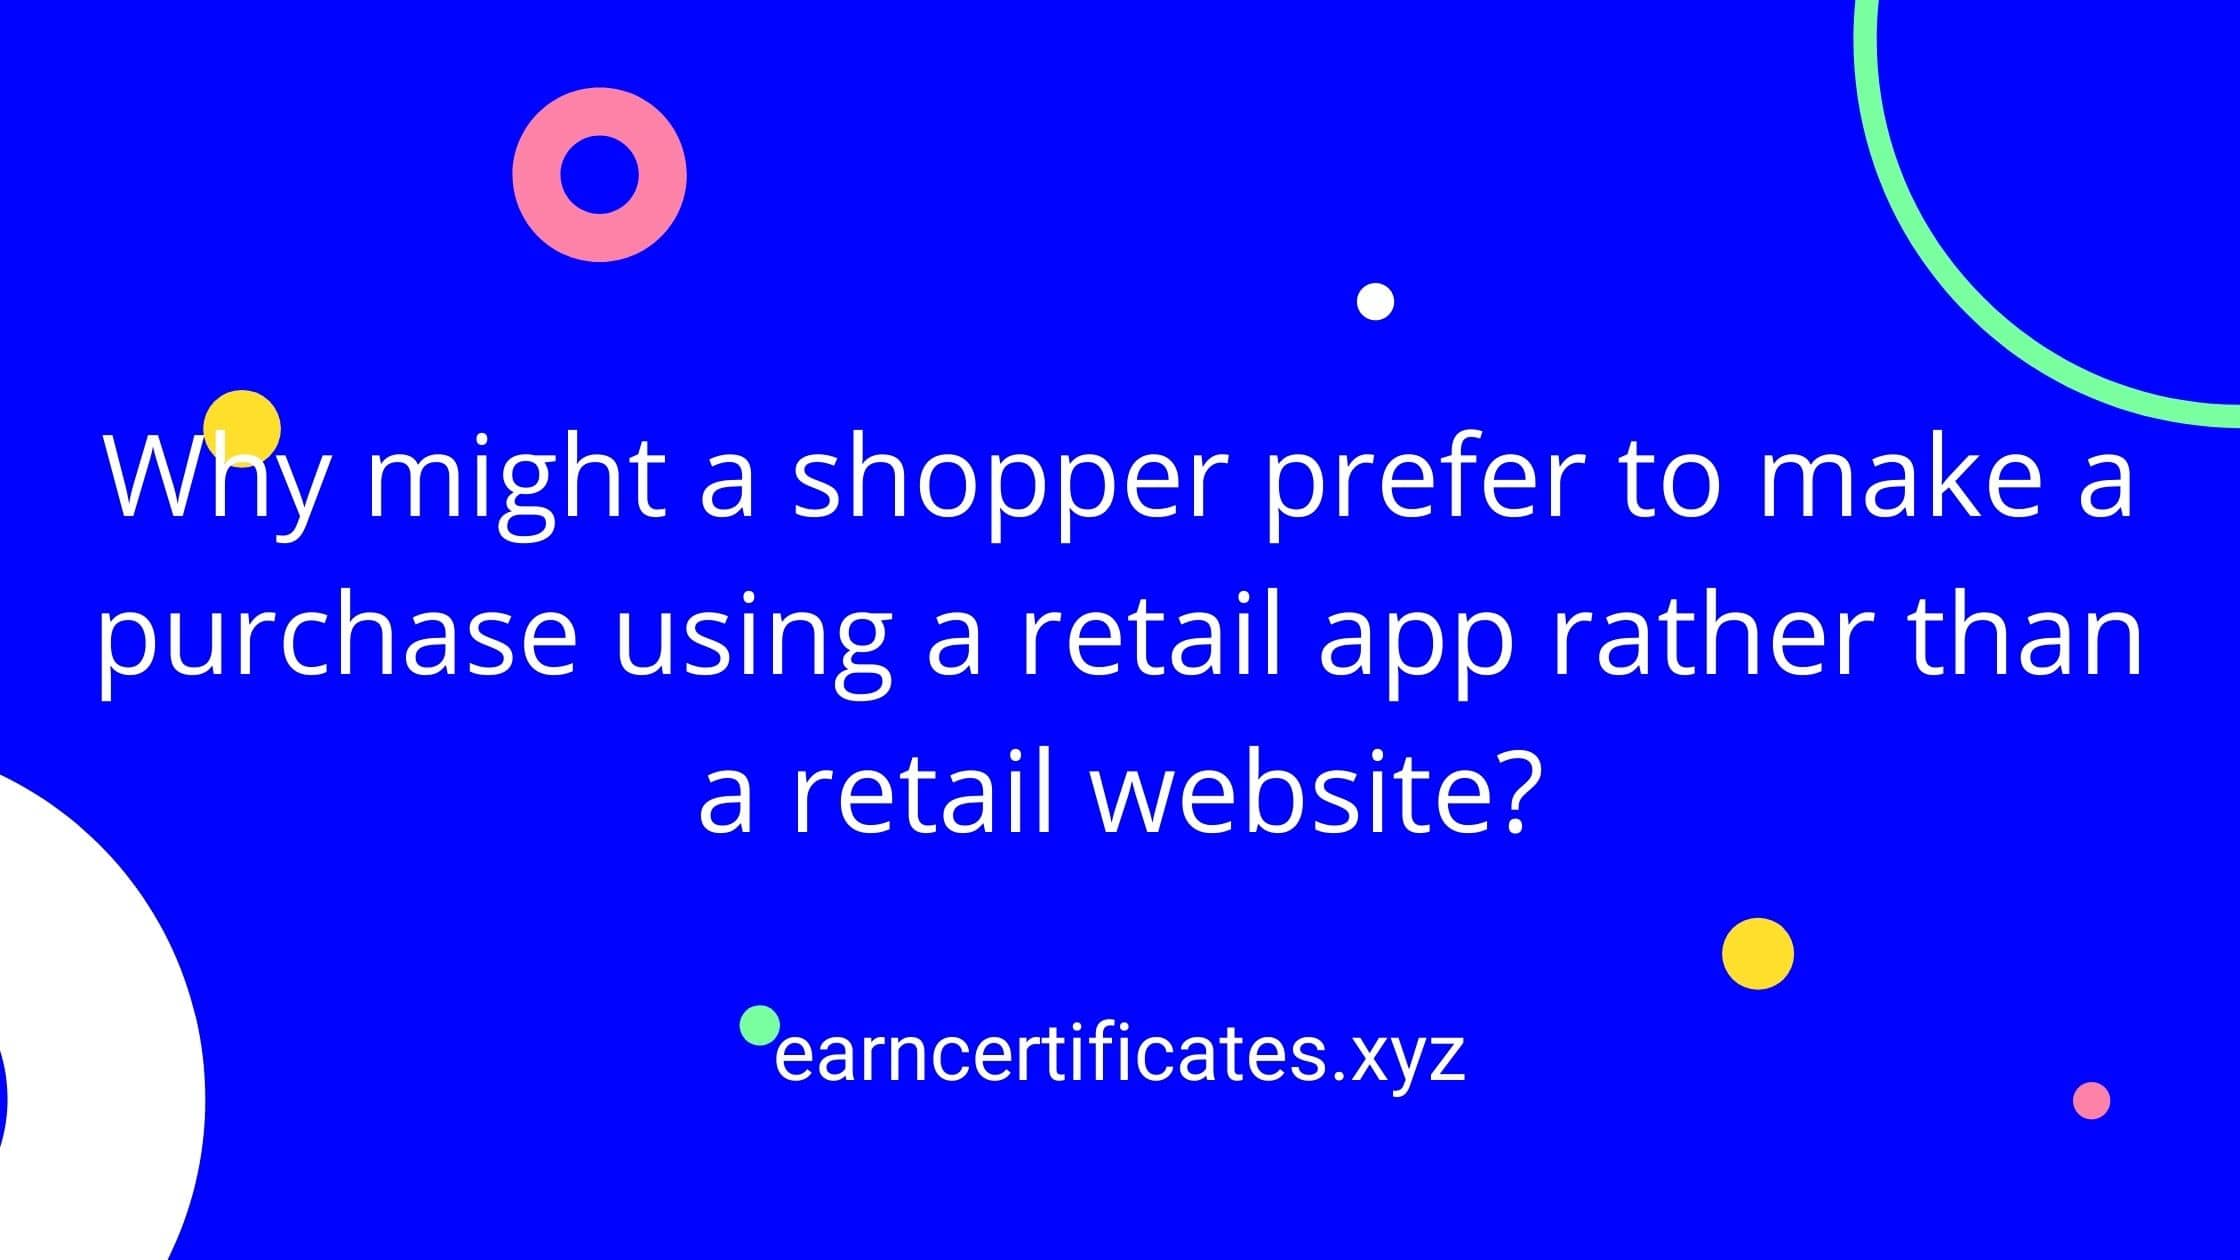 Why might a shopper prefer to make a purchase using a retail app rather than a retail website?